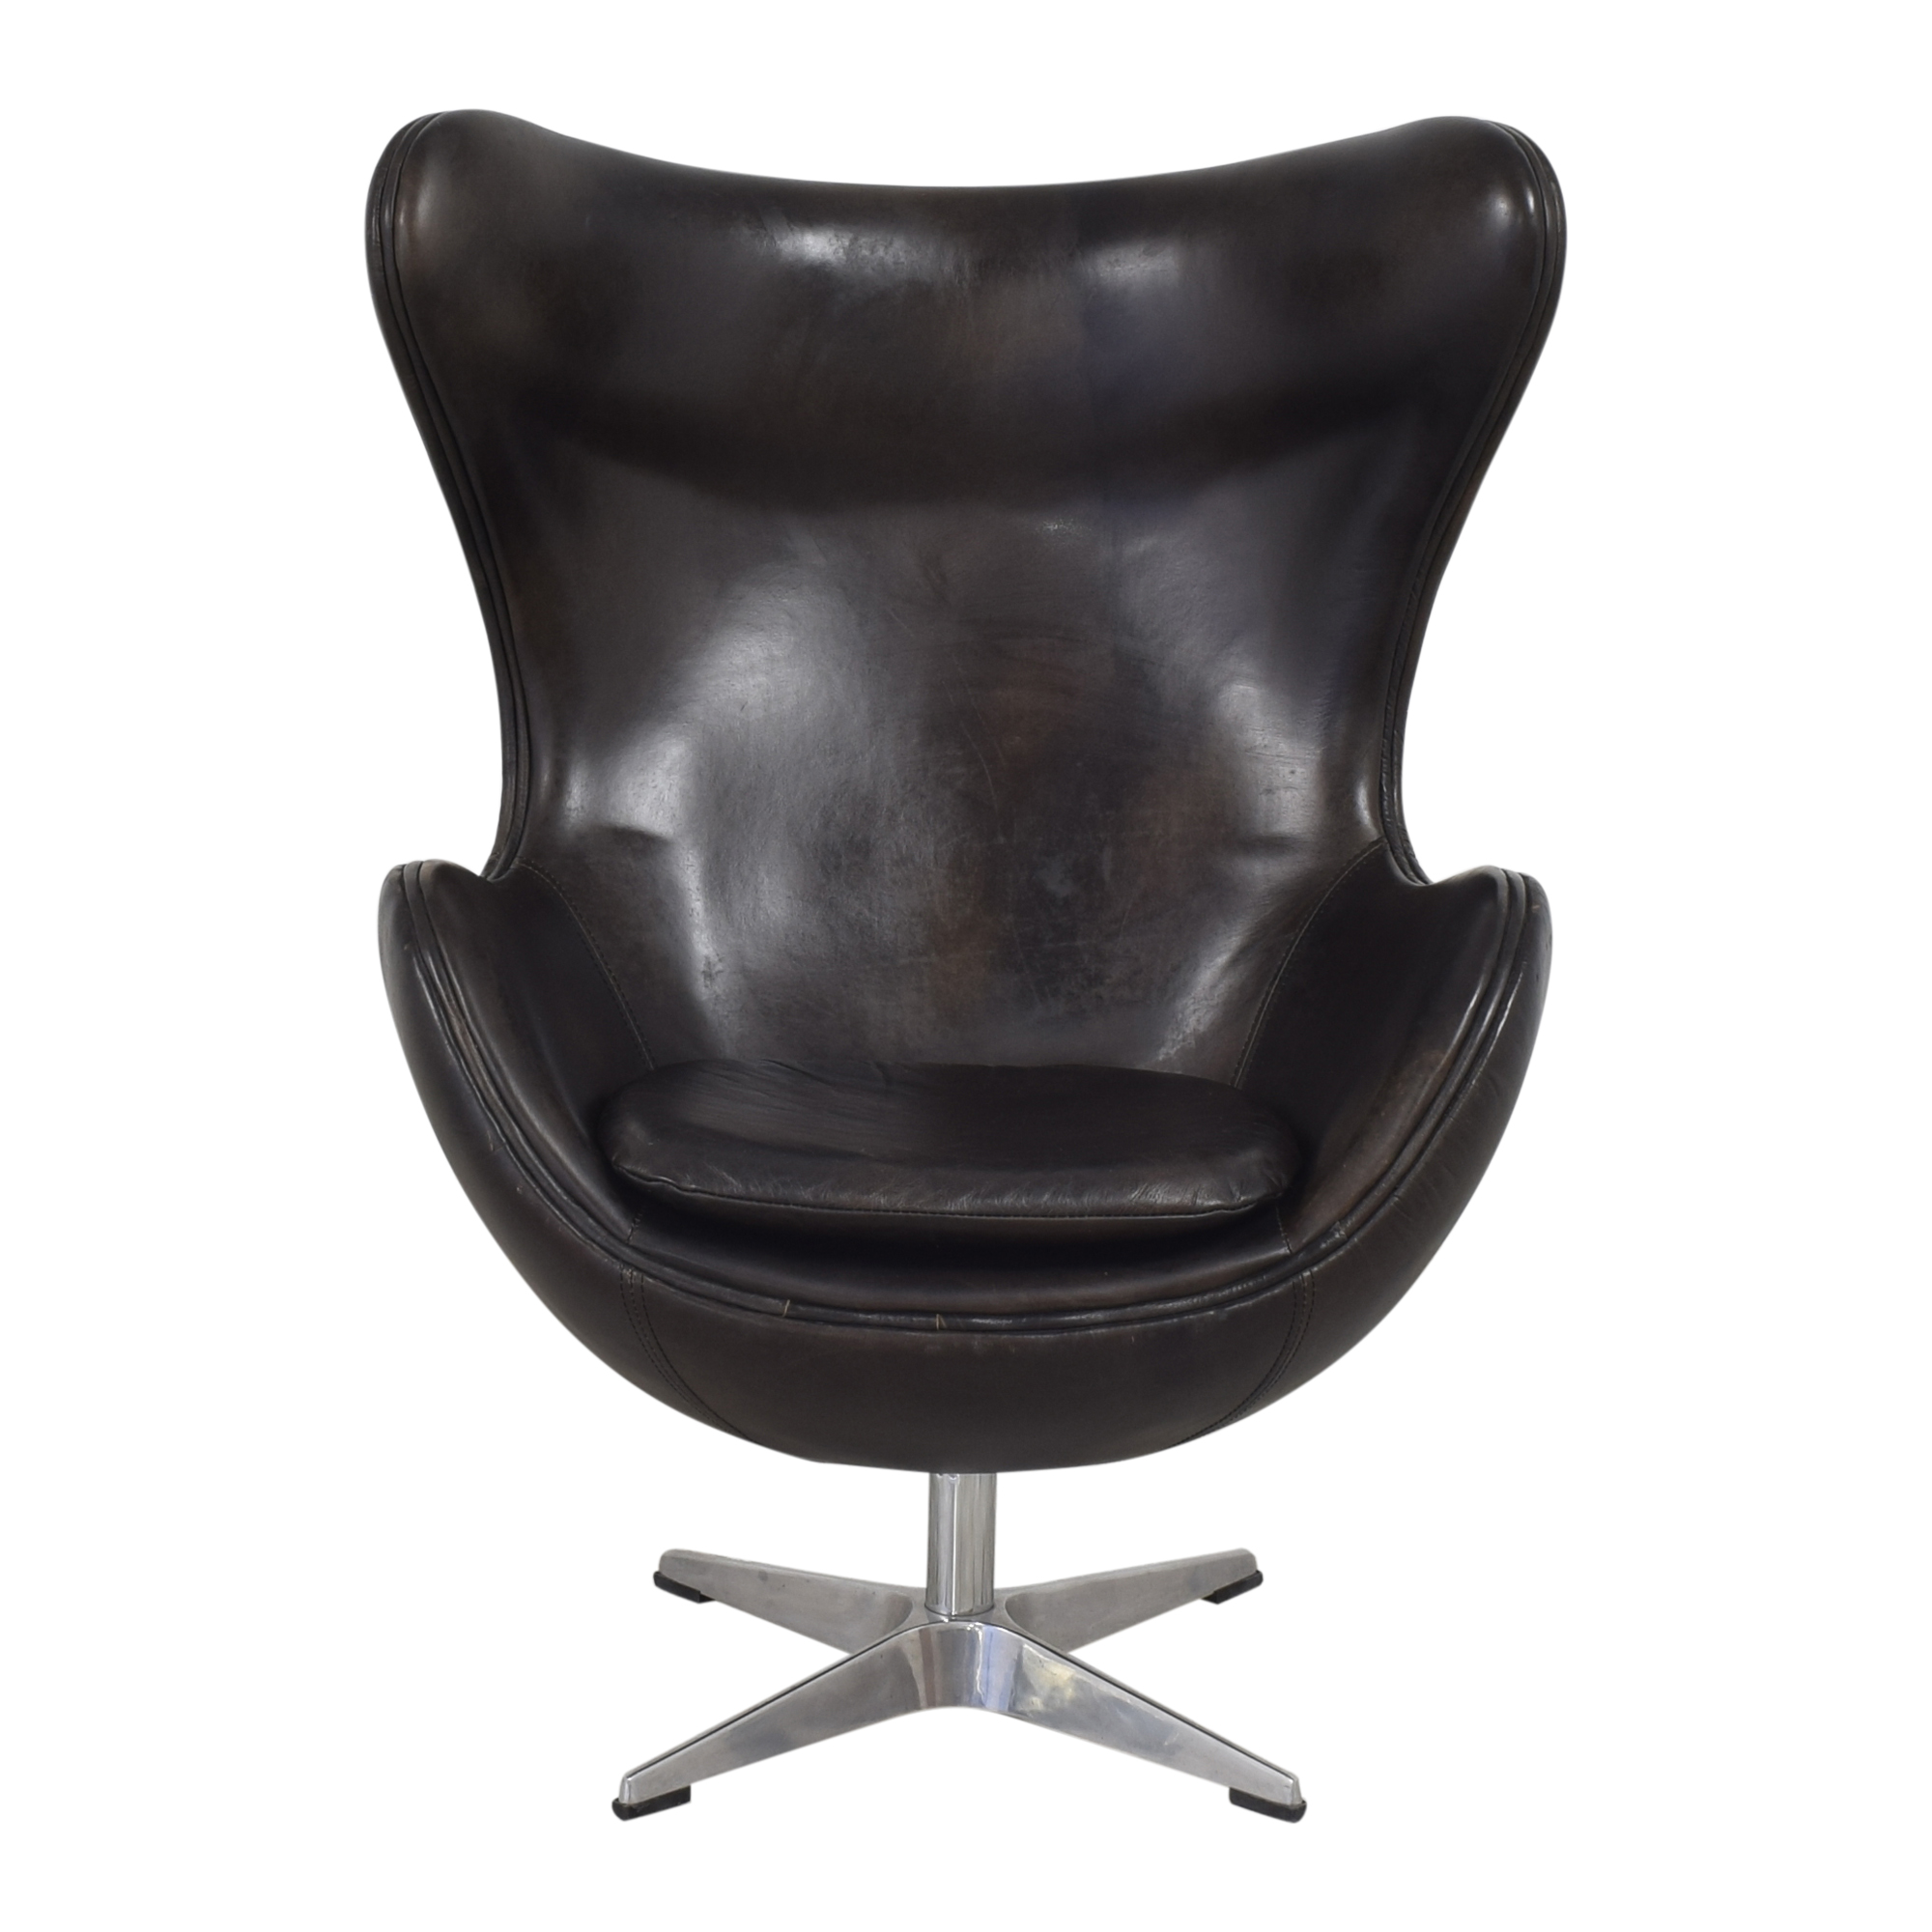 Restoration Hardware Restoration Hardware 1950s Copenhagen Chair second hand